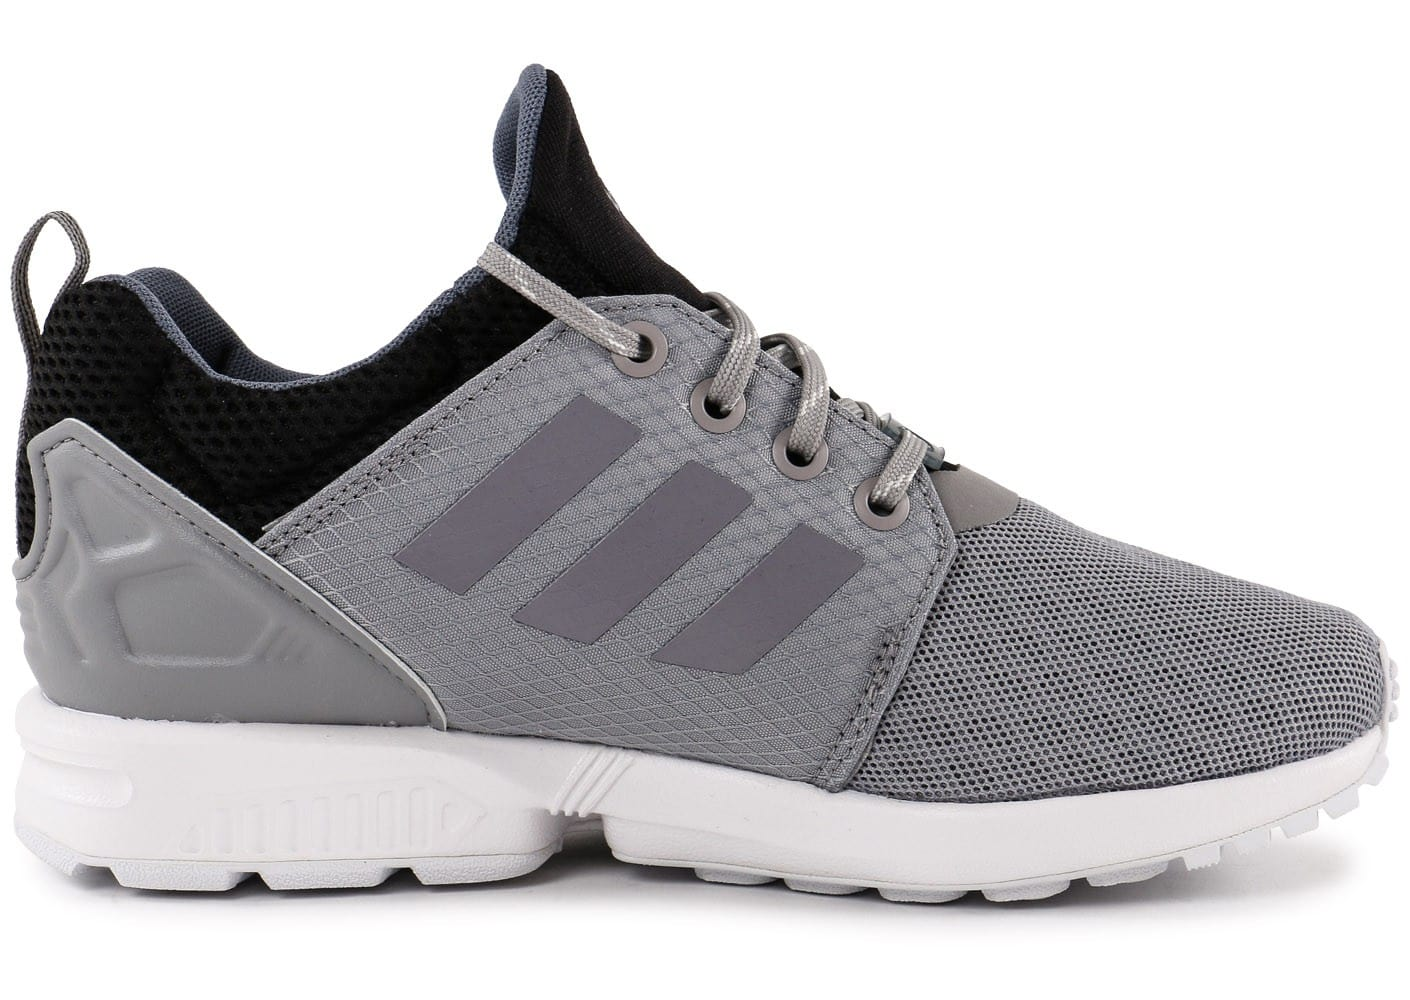 adidas zx flux montant